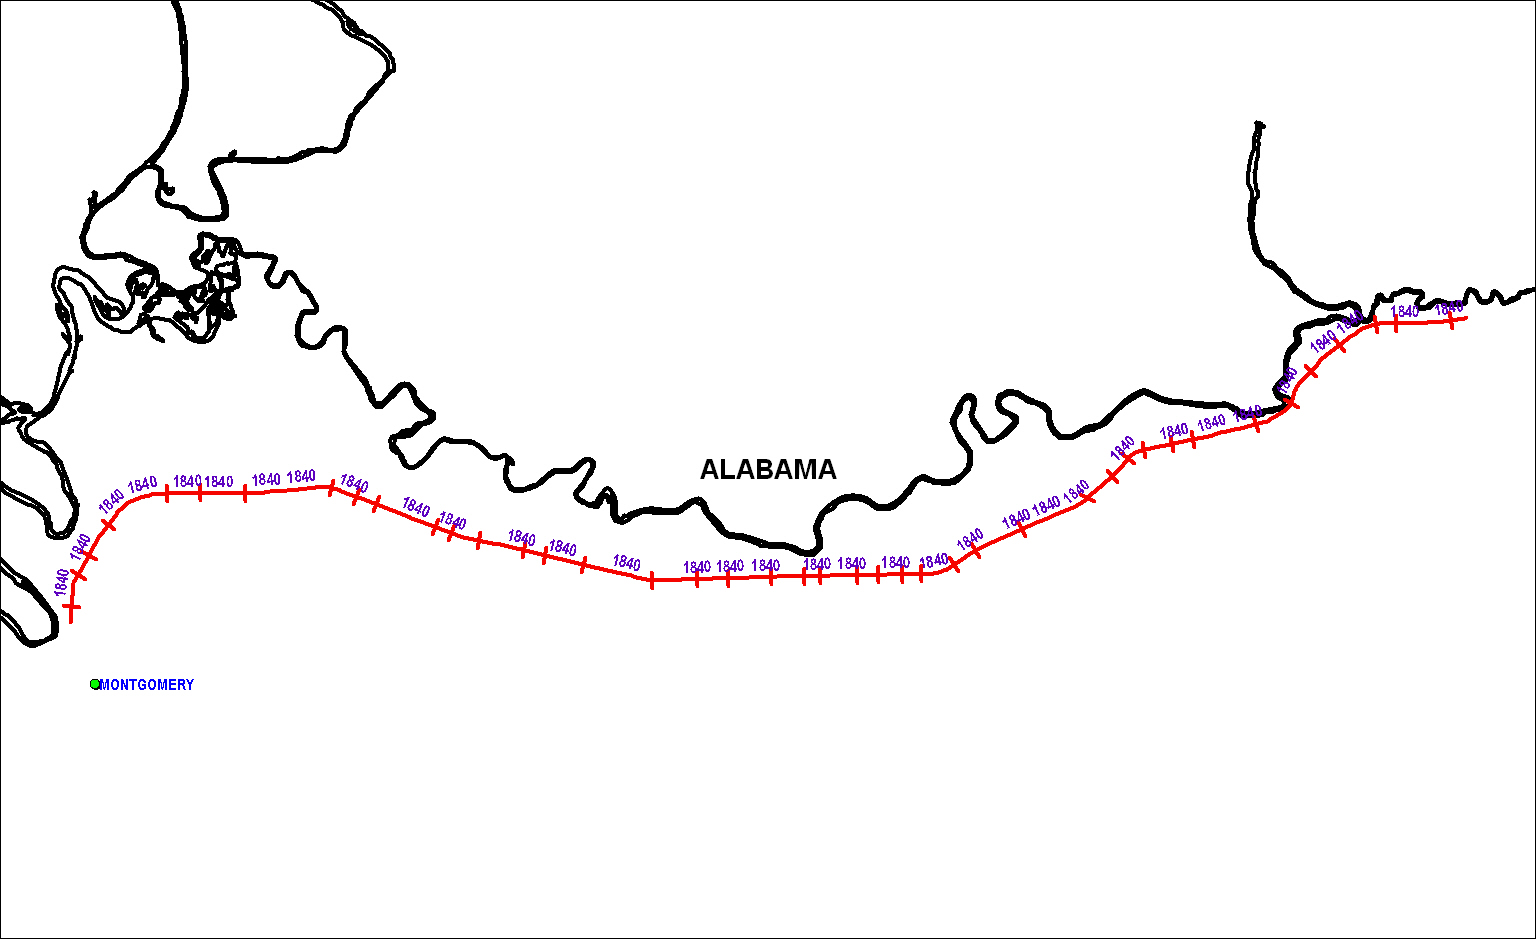 Montgomery Railroad as of 1850